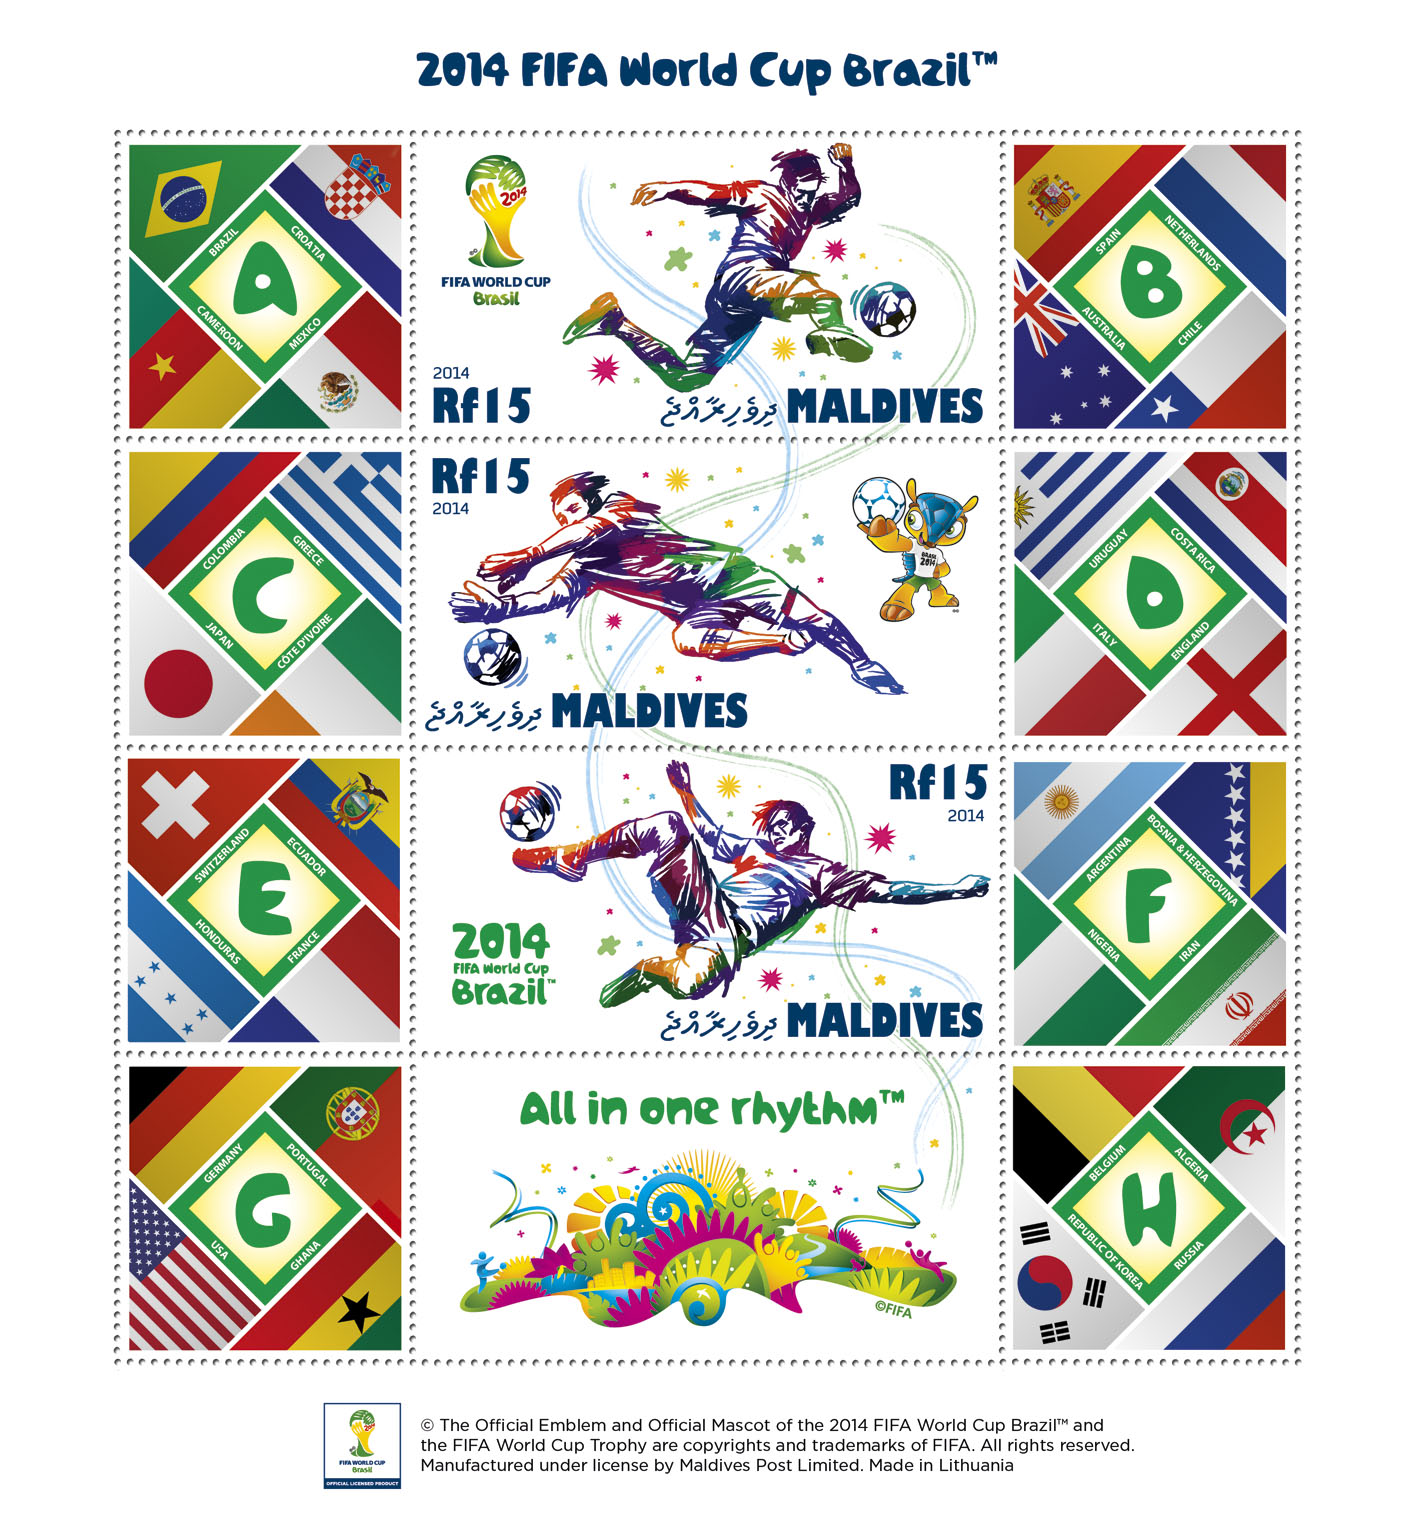 FIFA Football - Brazil 2014 (Sheet size - 180 x 195 mm) - Issue of Maldives postage stamps